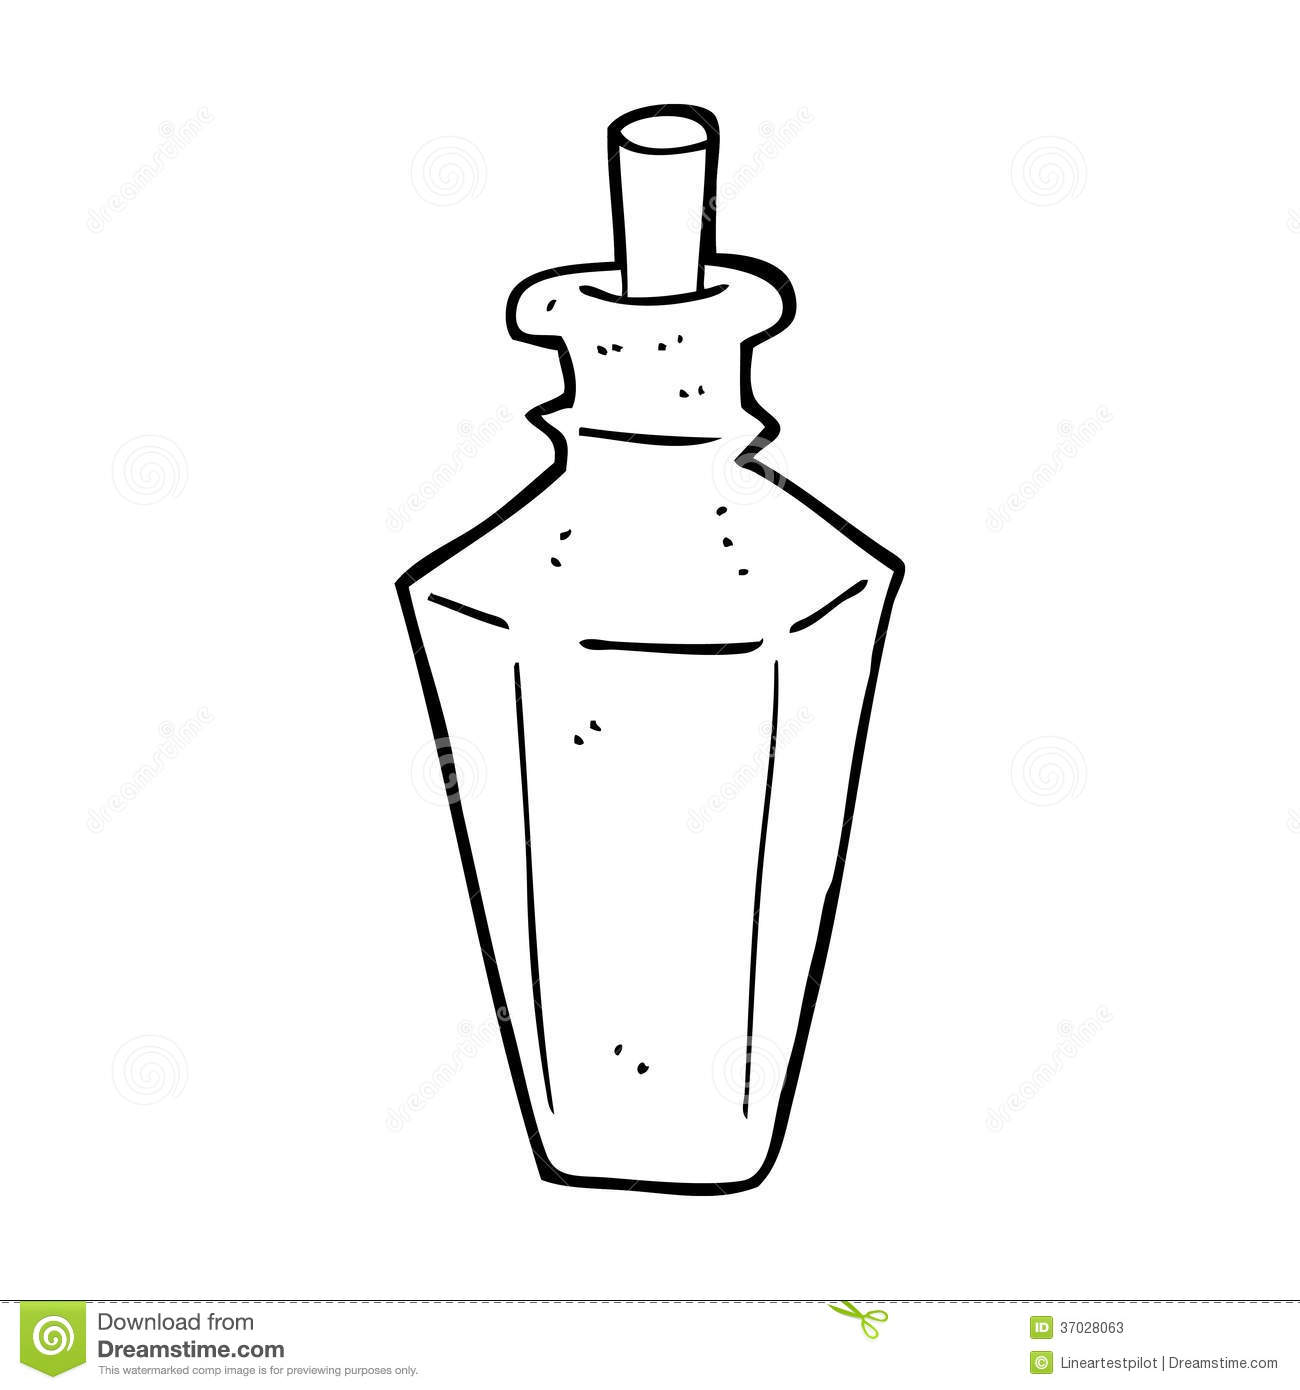 Perfume clipart black and white 10 » Clipart Station.